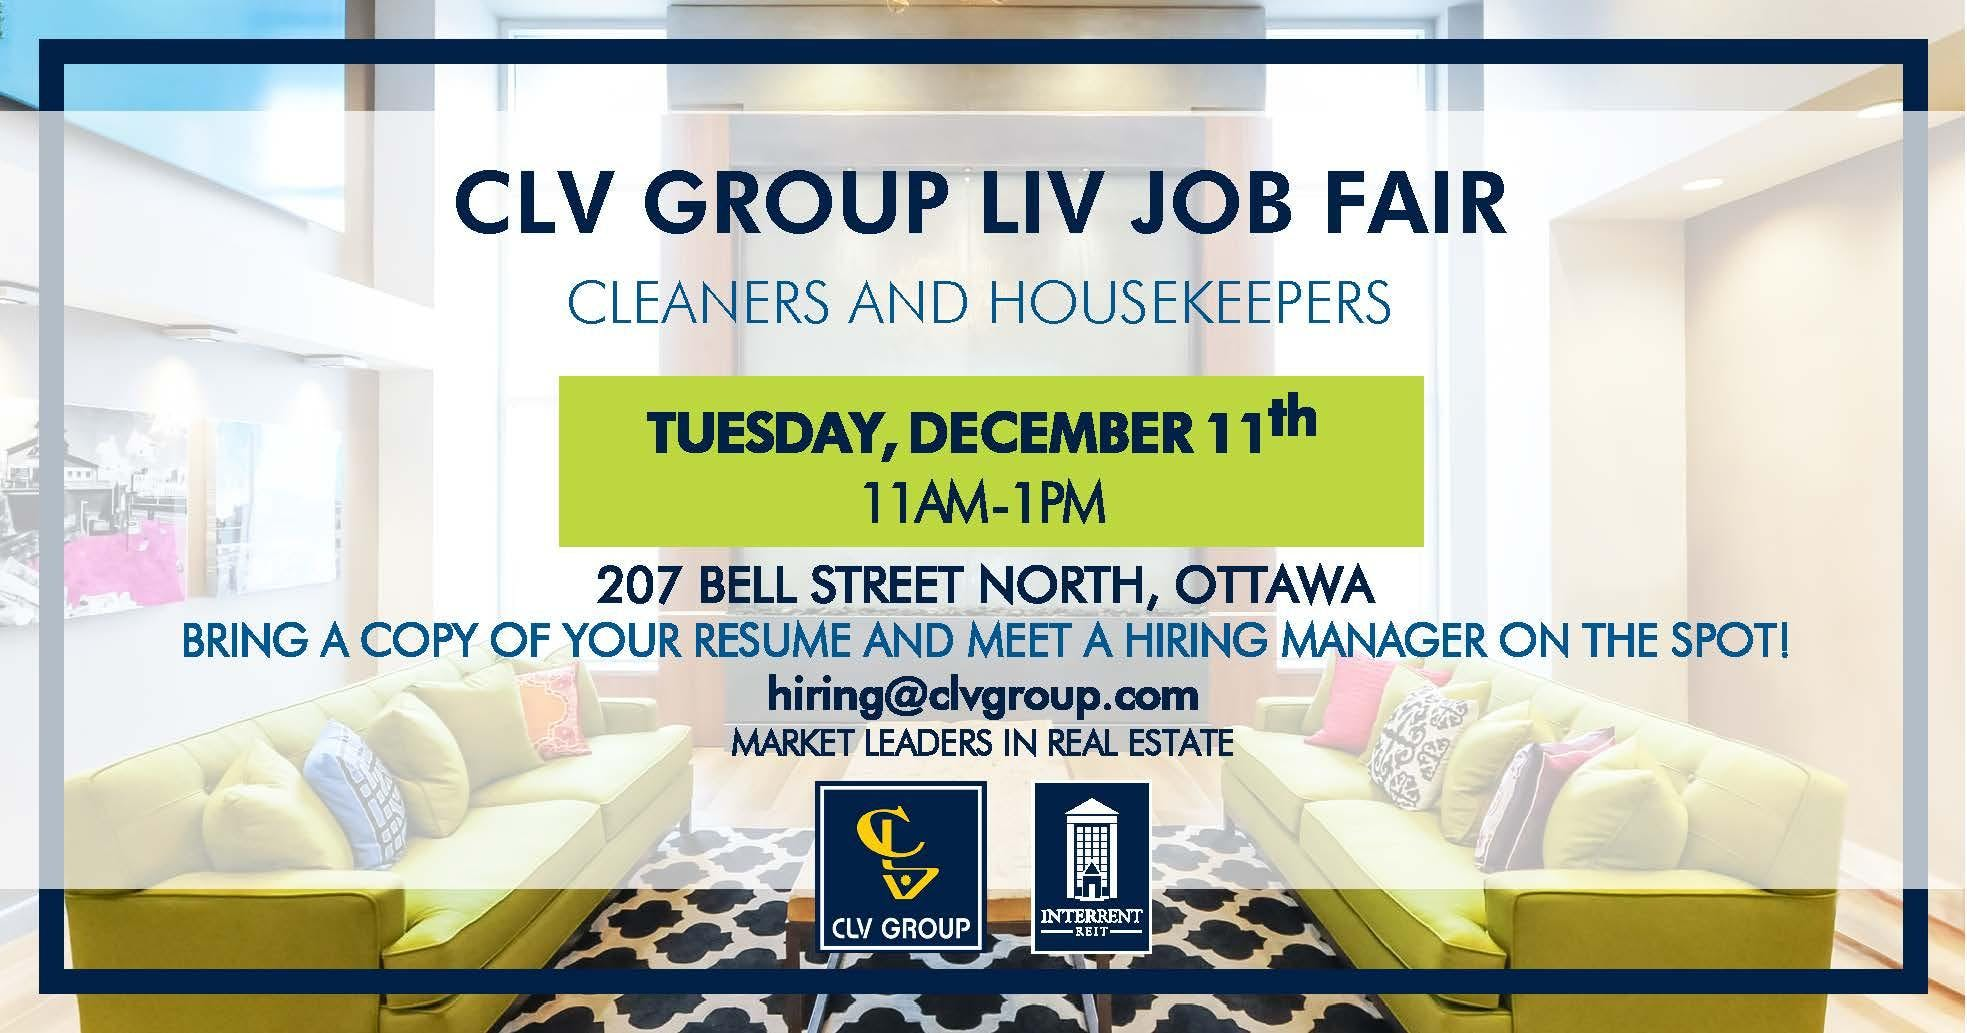 CLV Group LIV Job Fair - Cleaners and Housekeepers